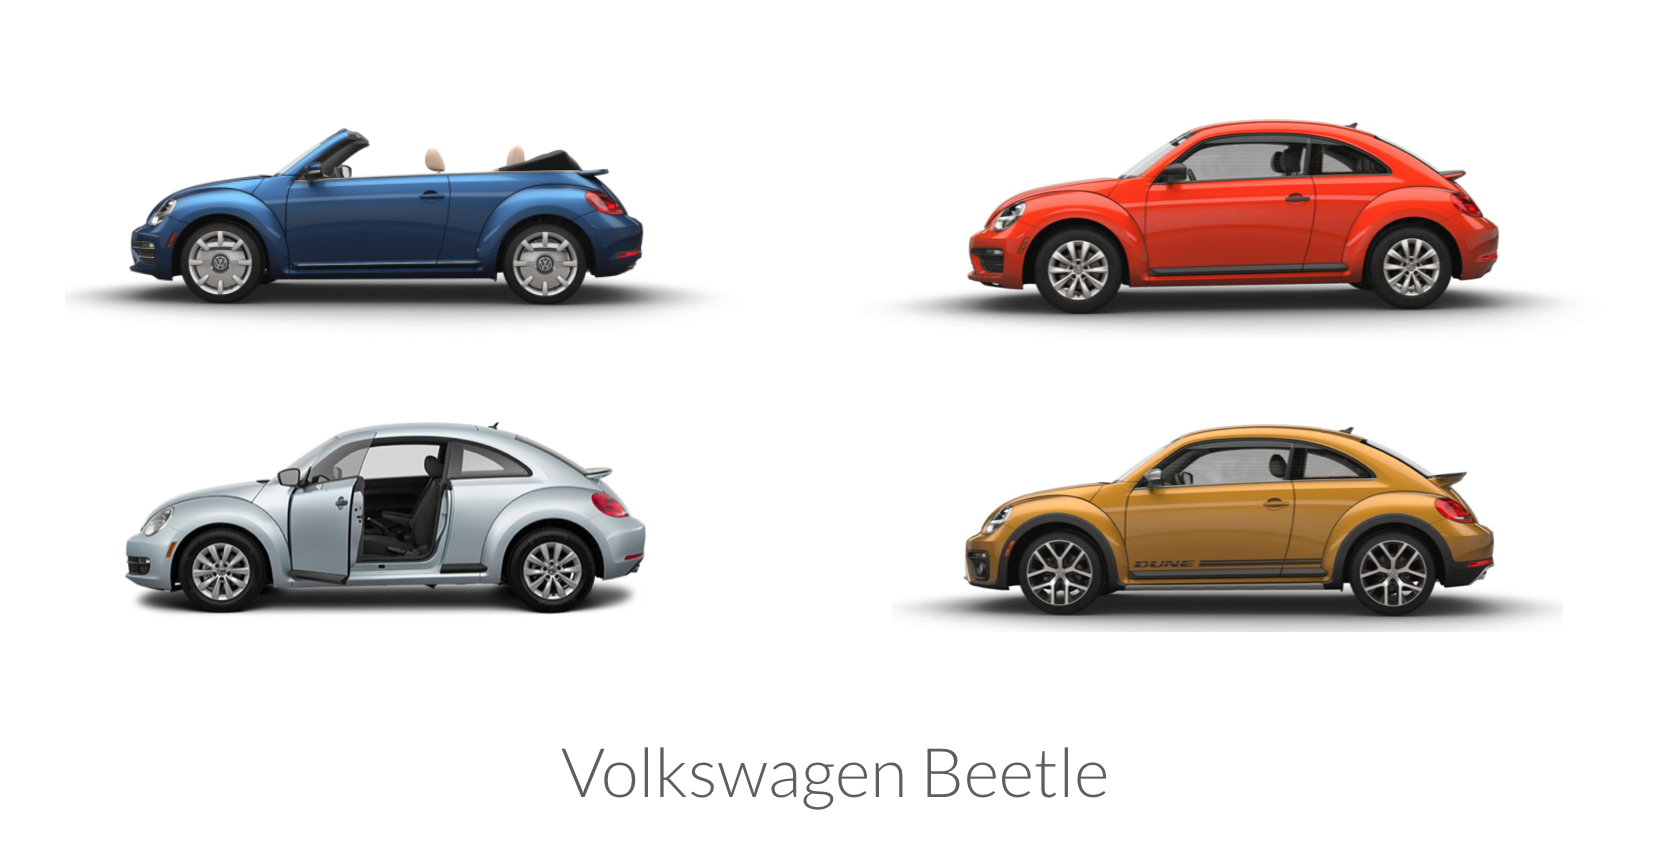 Example of the Volkswagen beetle modular design